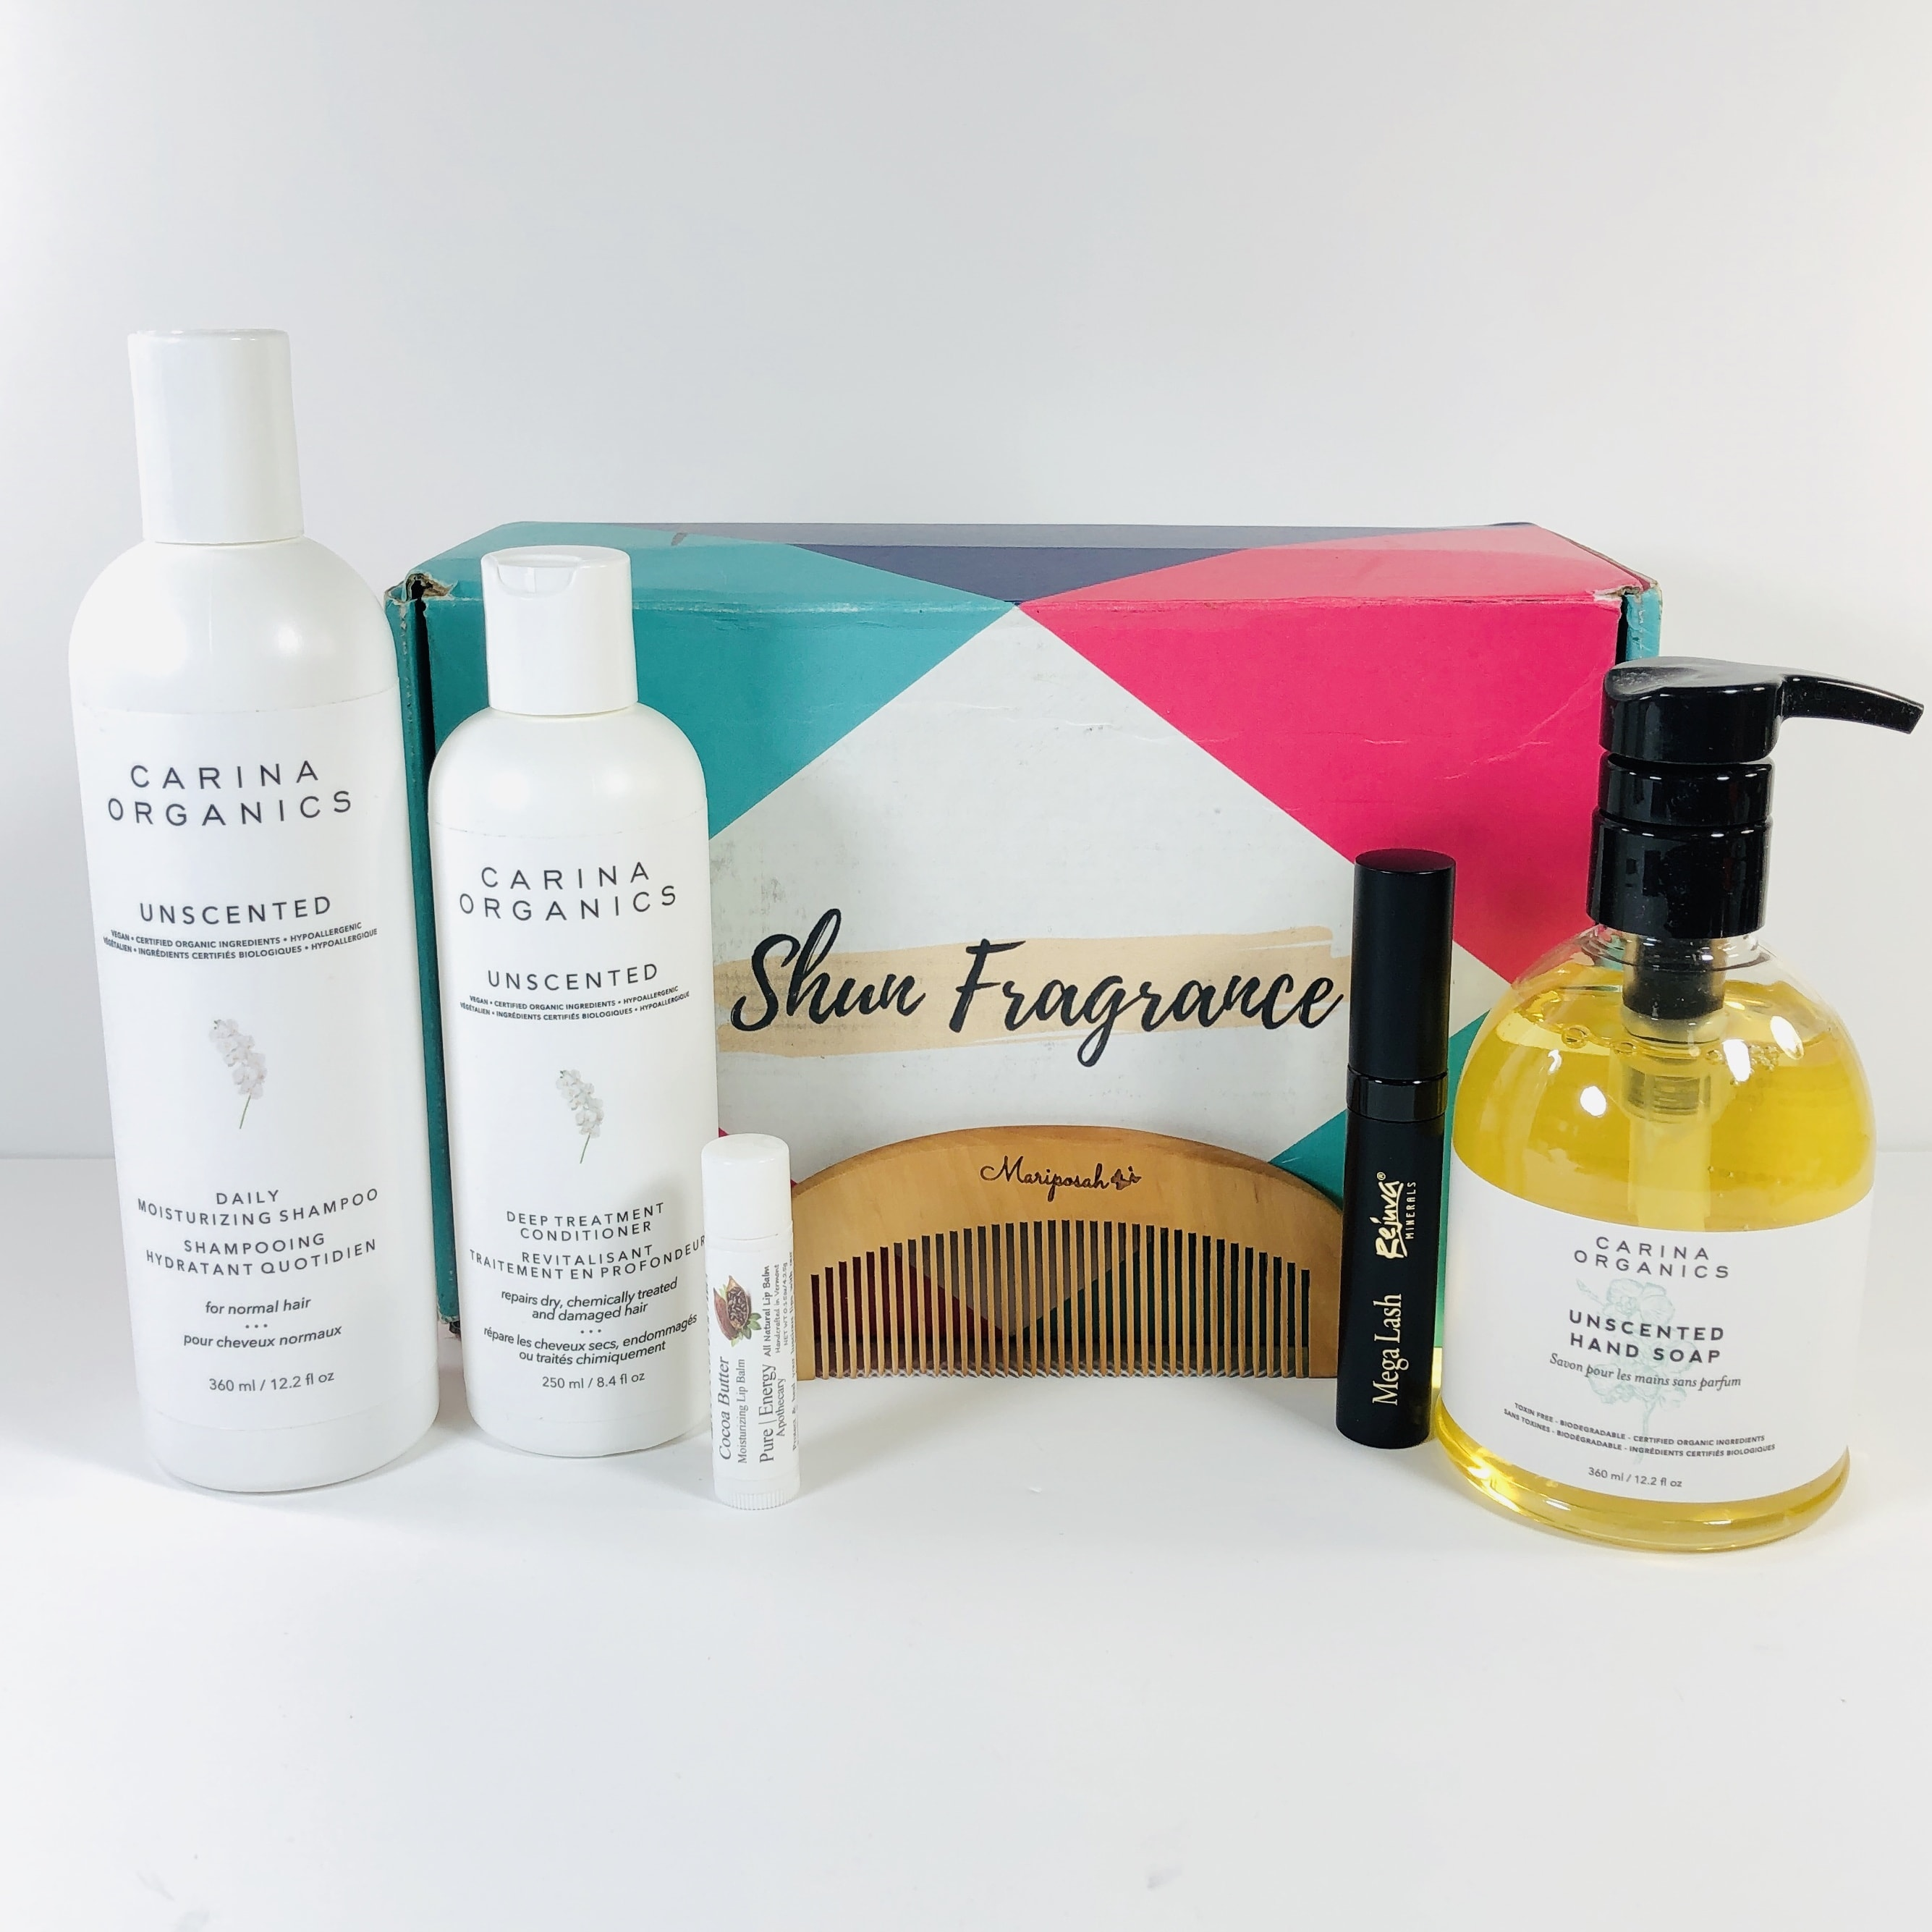 Shun Fragrance October 2019 Subscription Box Review + Coupon